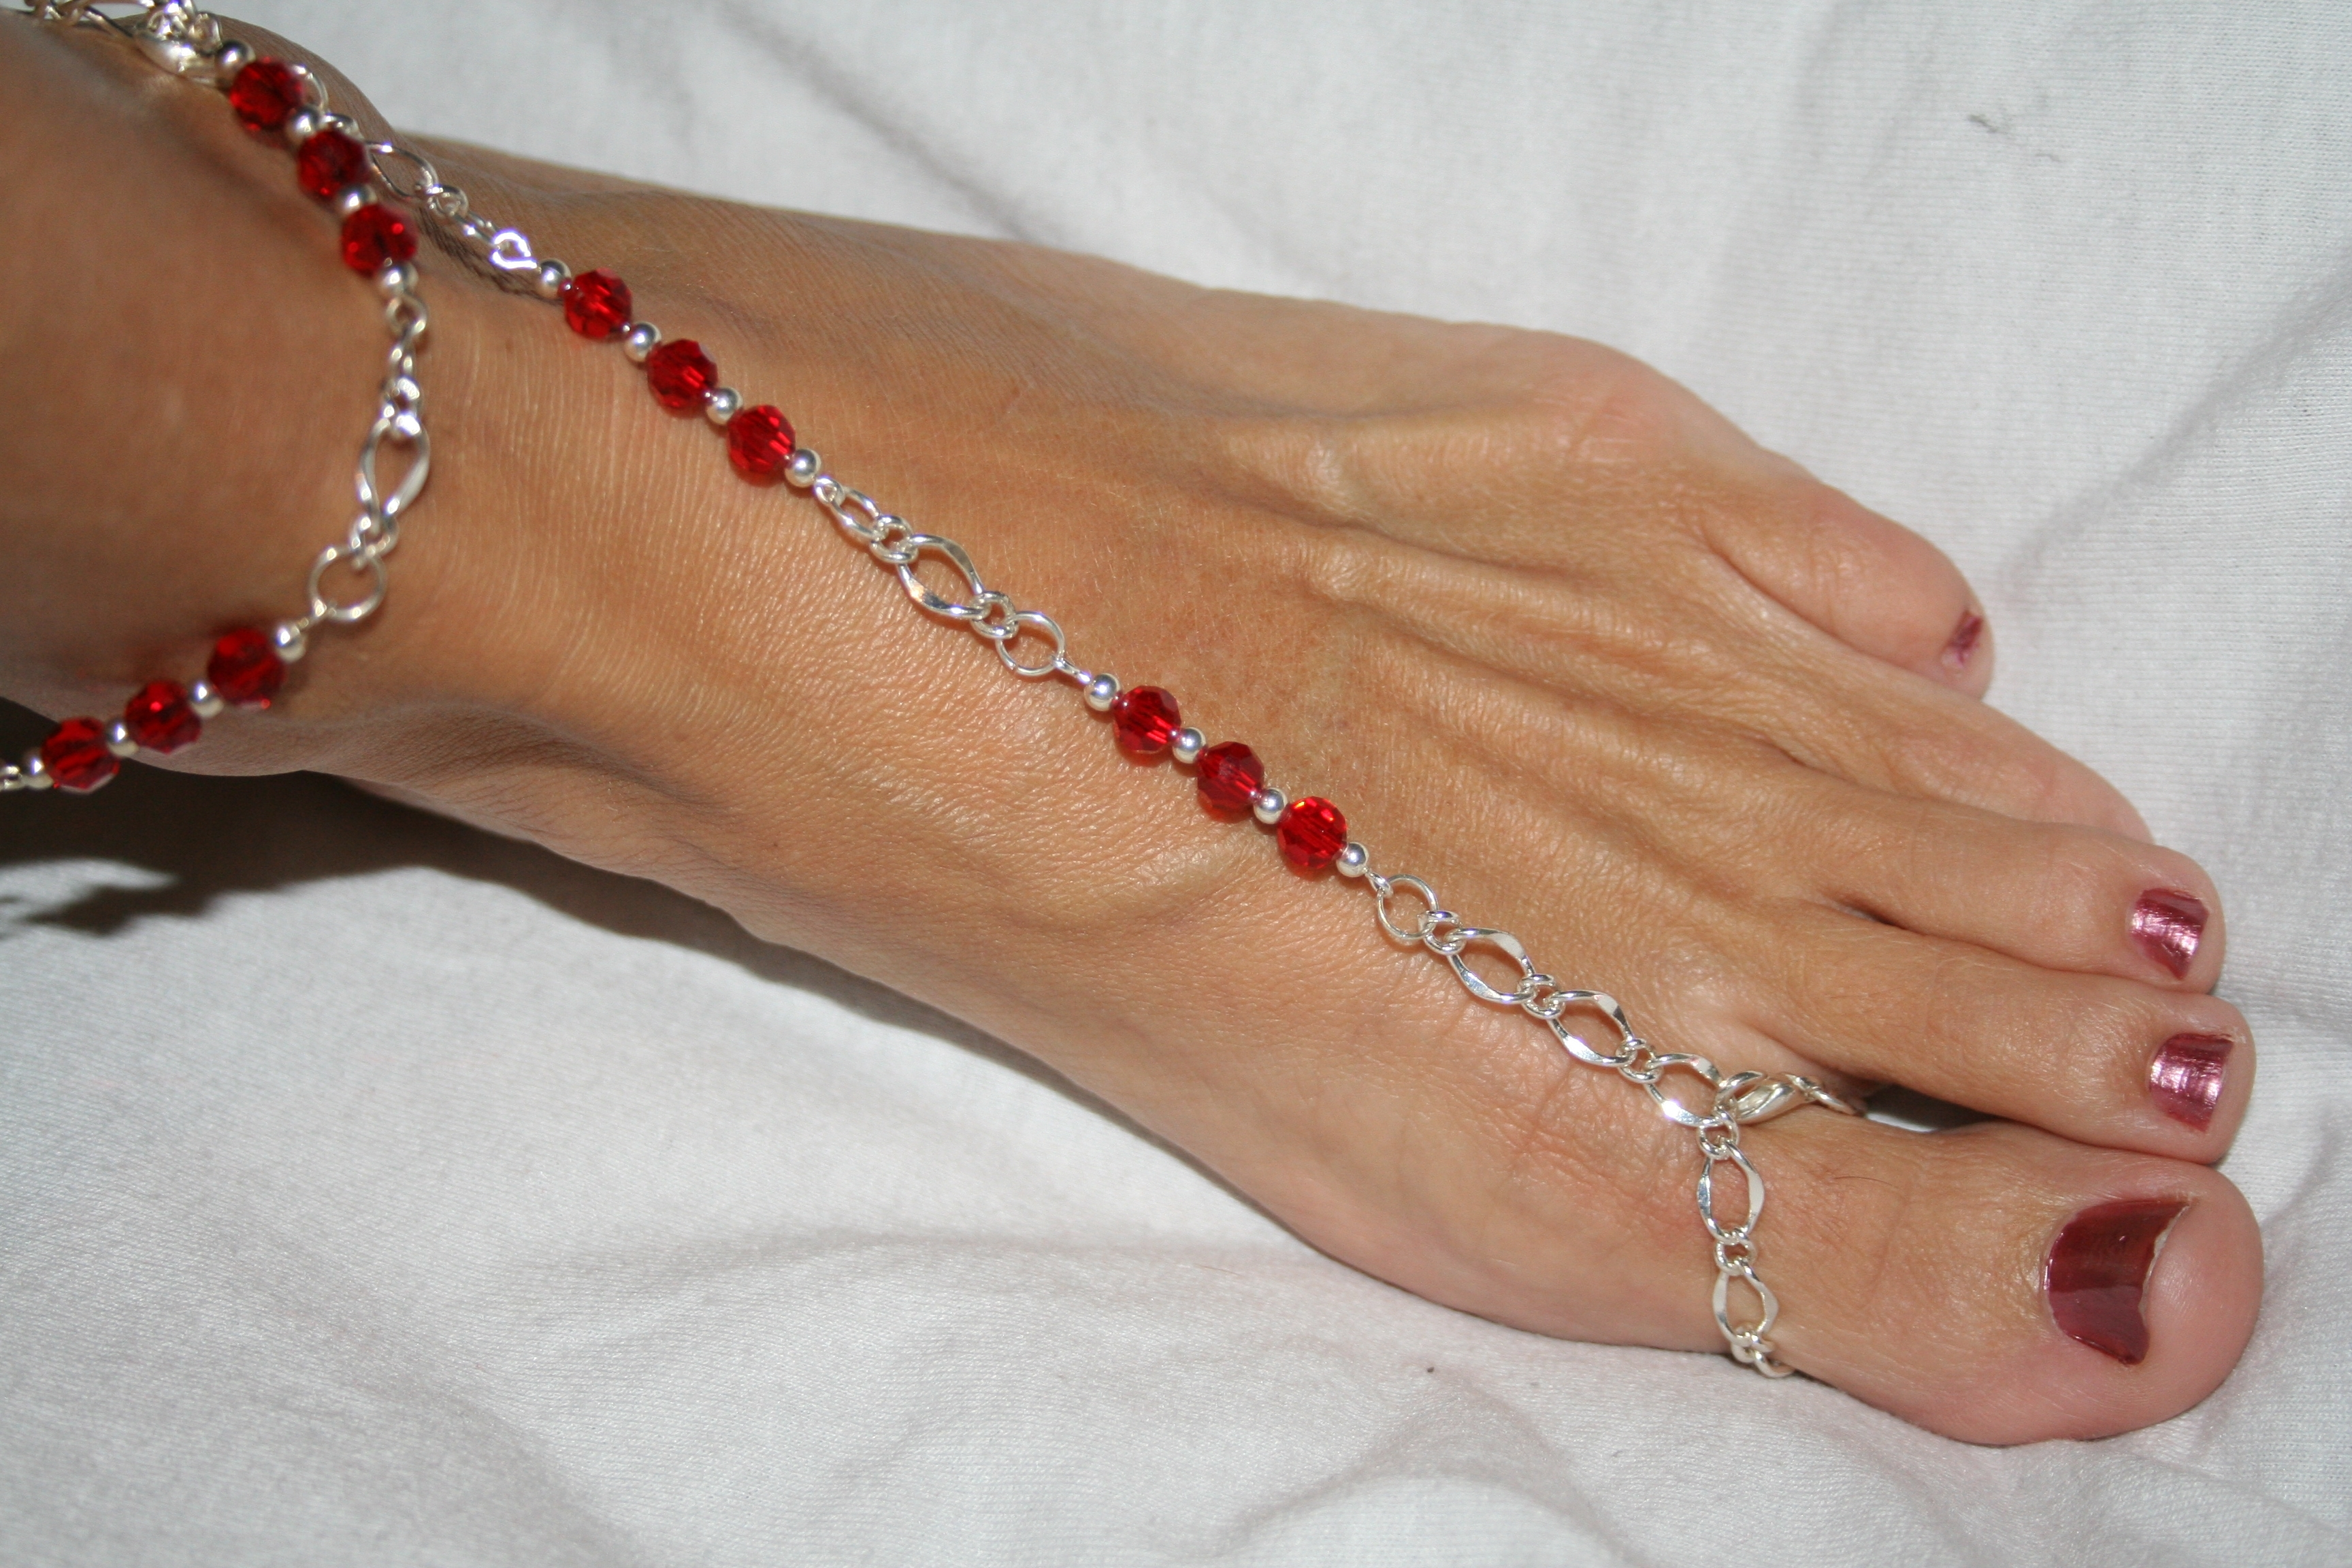 this captivating natural aeravida artisan handmade red with details products brass stone handcrafted thailand bird bracelet bracelets tribal rope ankle waxed made link and coral beading giving beads anklets as p from is cotton charm the popular round anklet